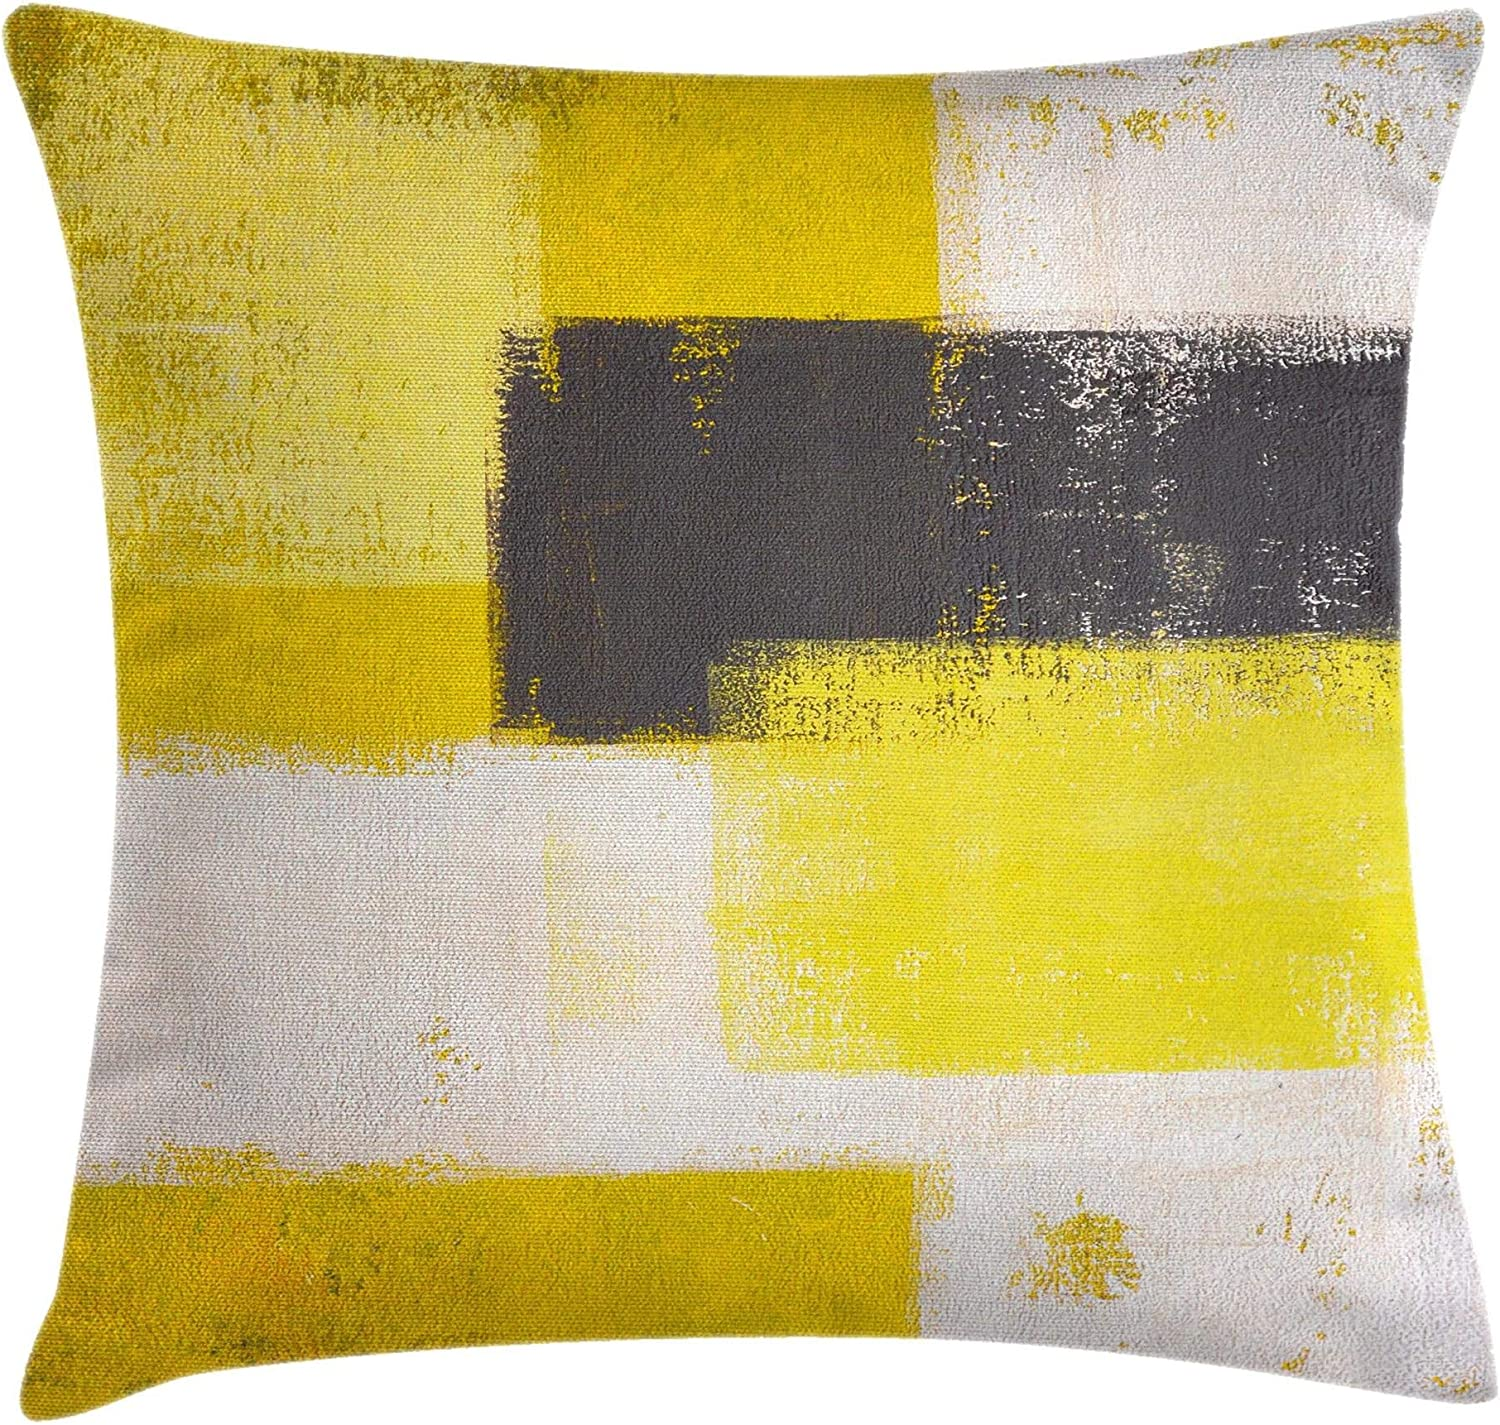 Amazon Com Ambesonne Grey And Yellow Throw Pillow Cushion Cover Abstract Grunge Style Brushstrokes Painting Style Decorative Square Accent Pillow Case 20 X 20 White Charcoal Home Kitchen